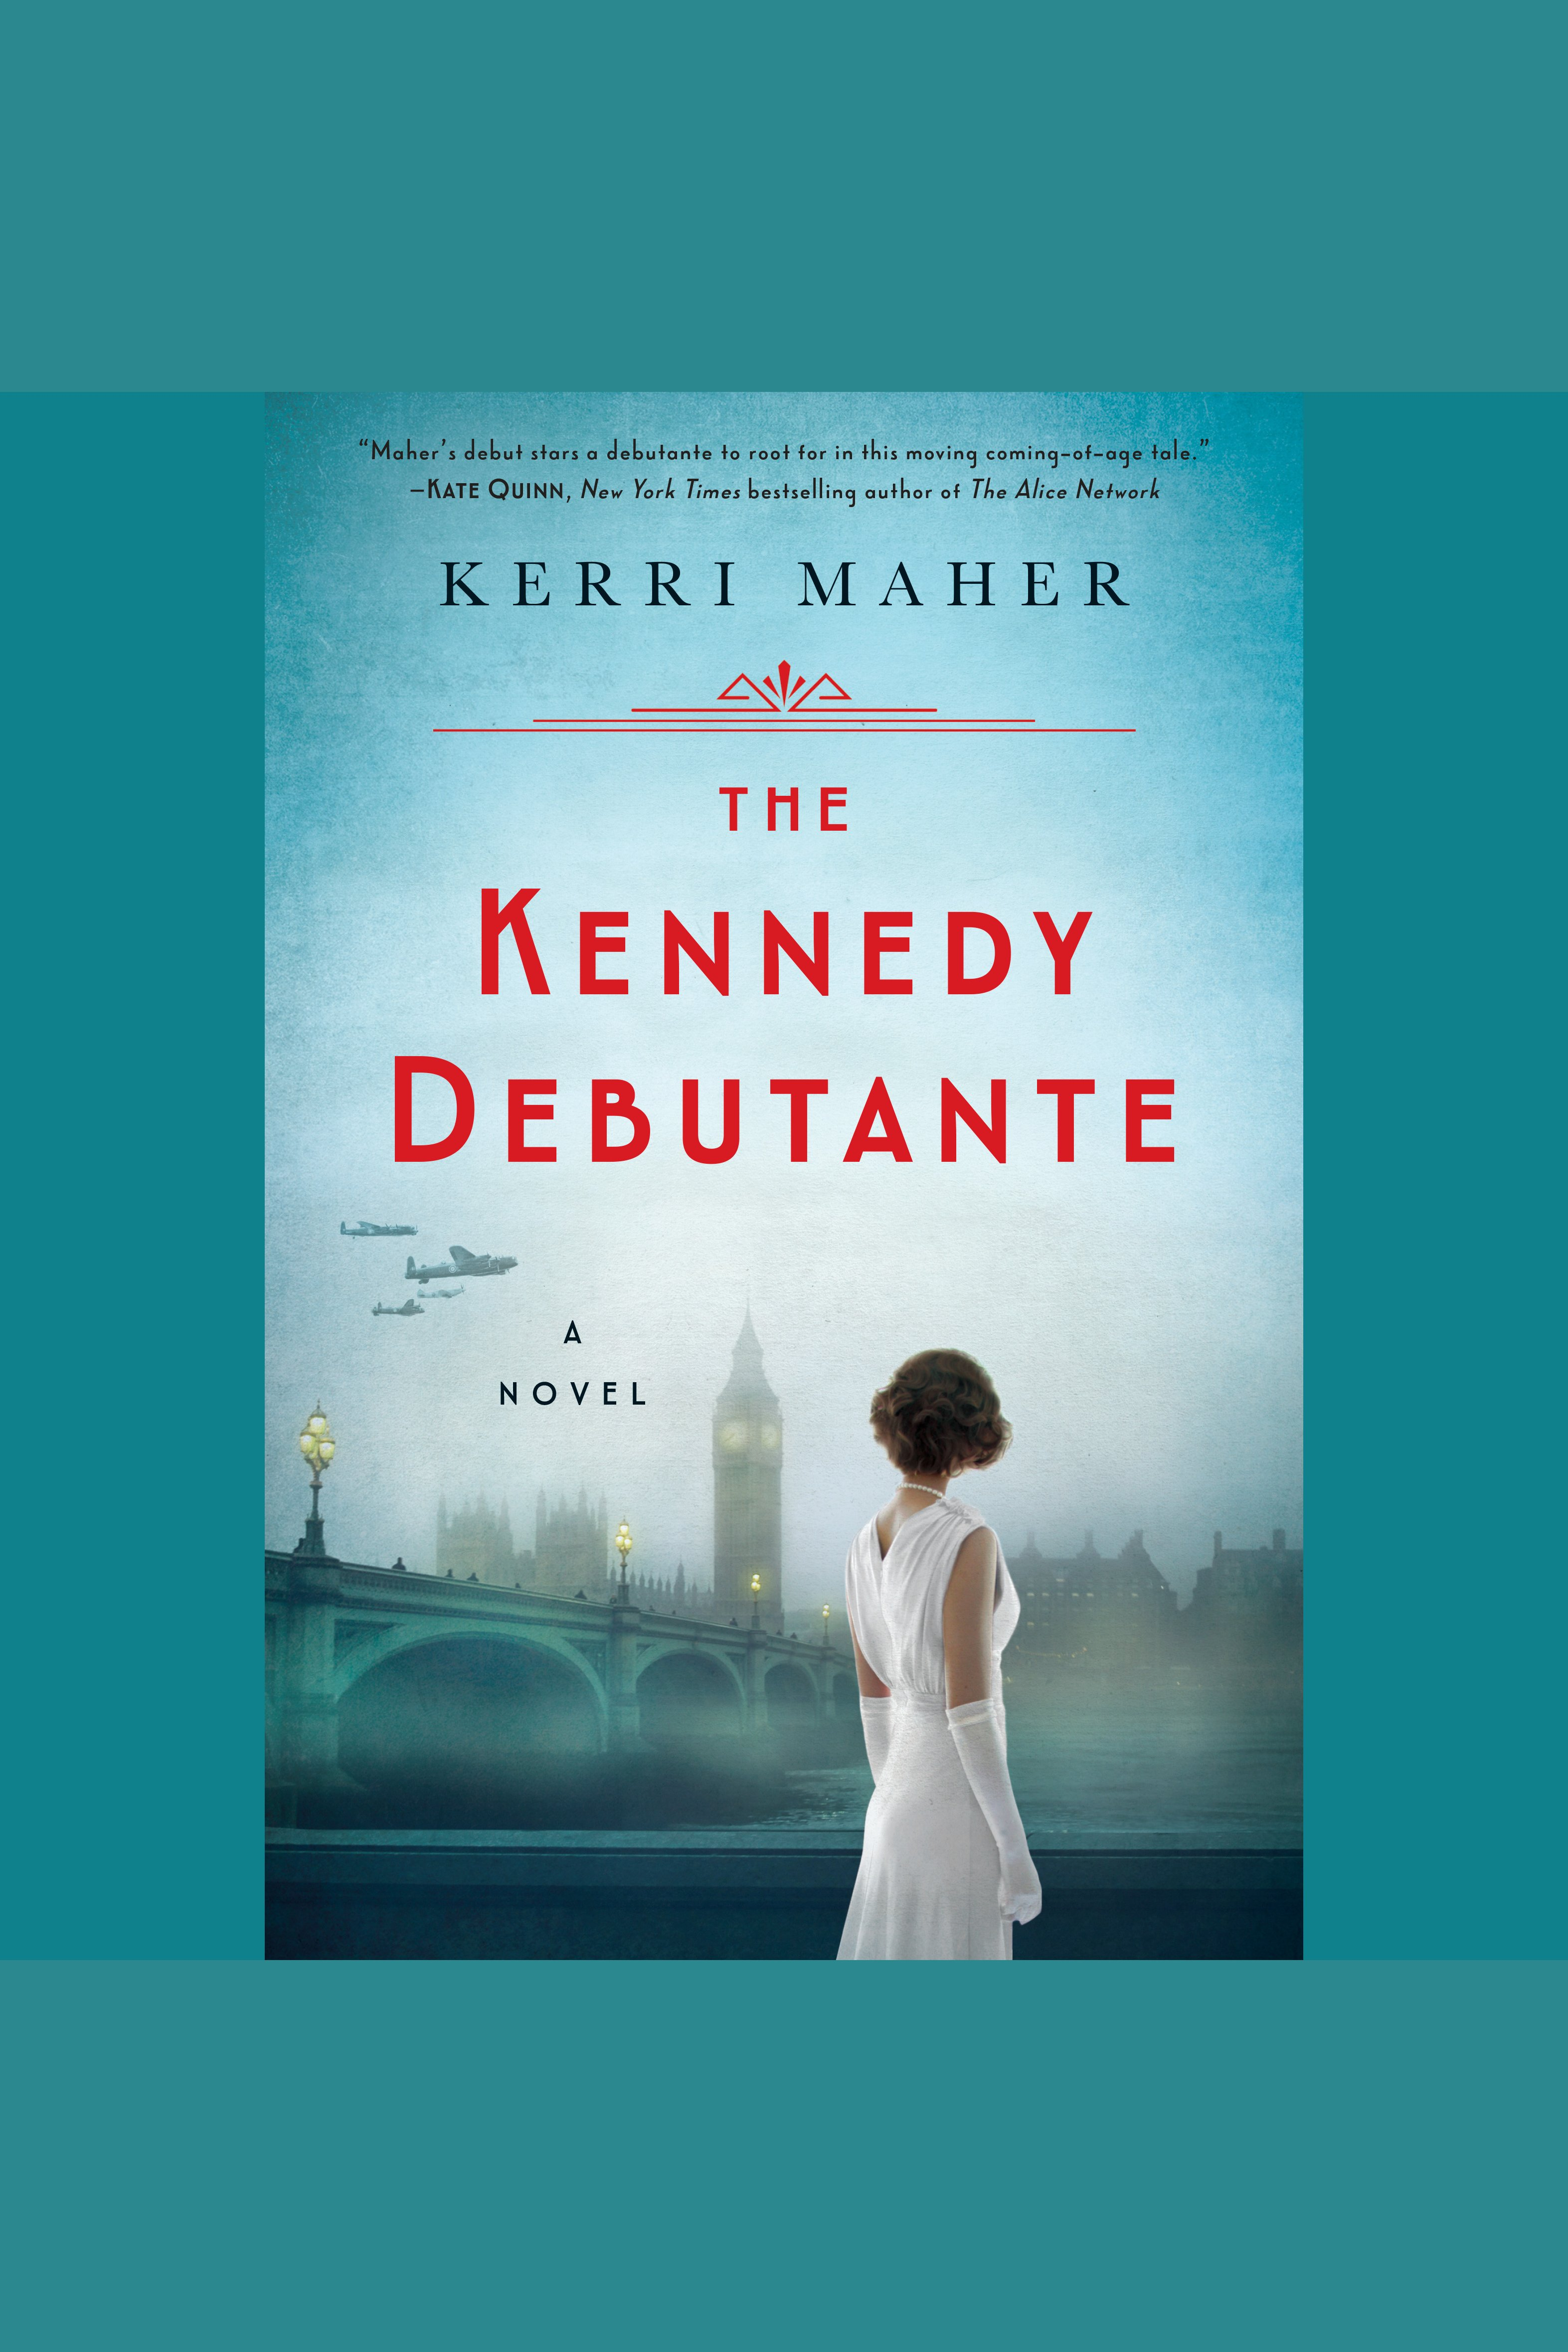 The Kennedy debutante cover image